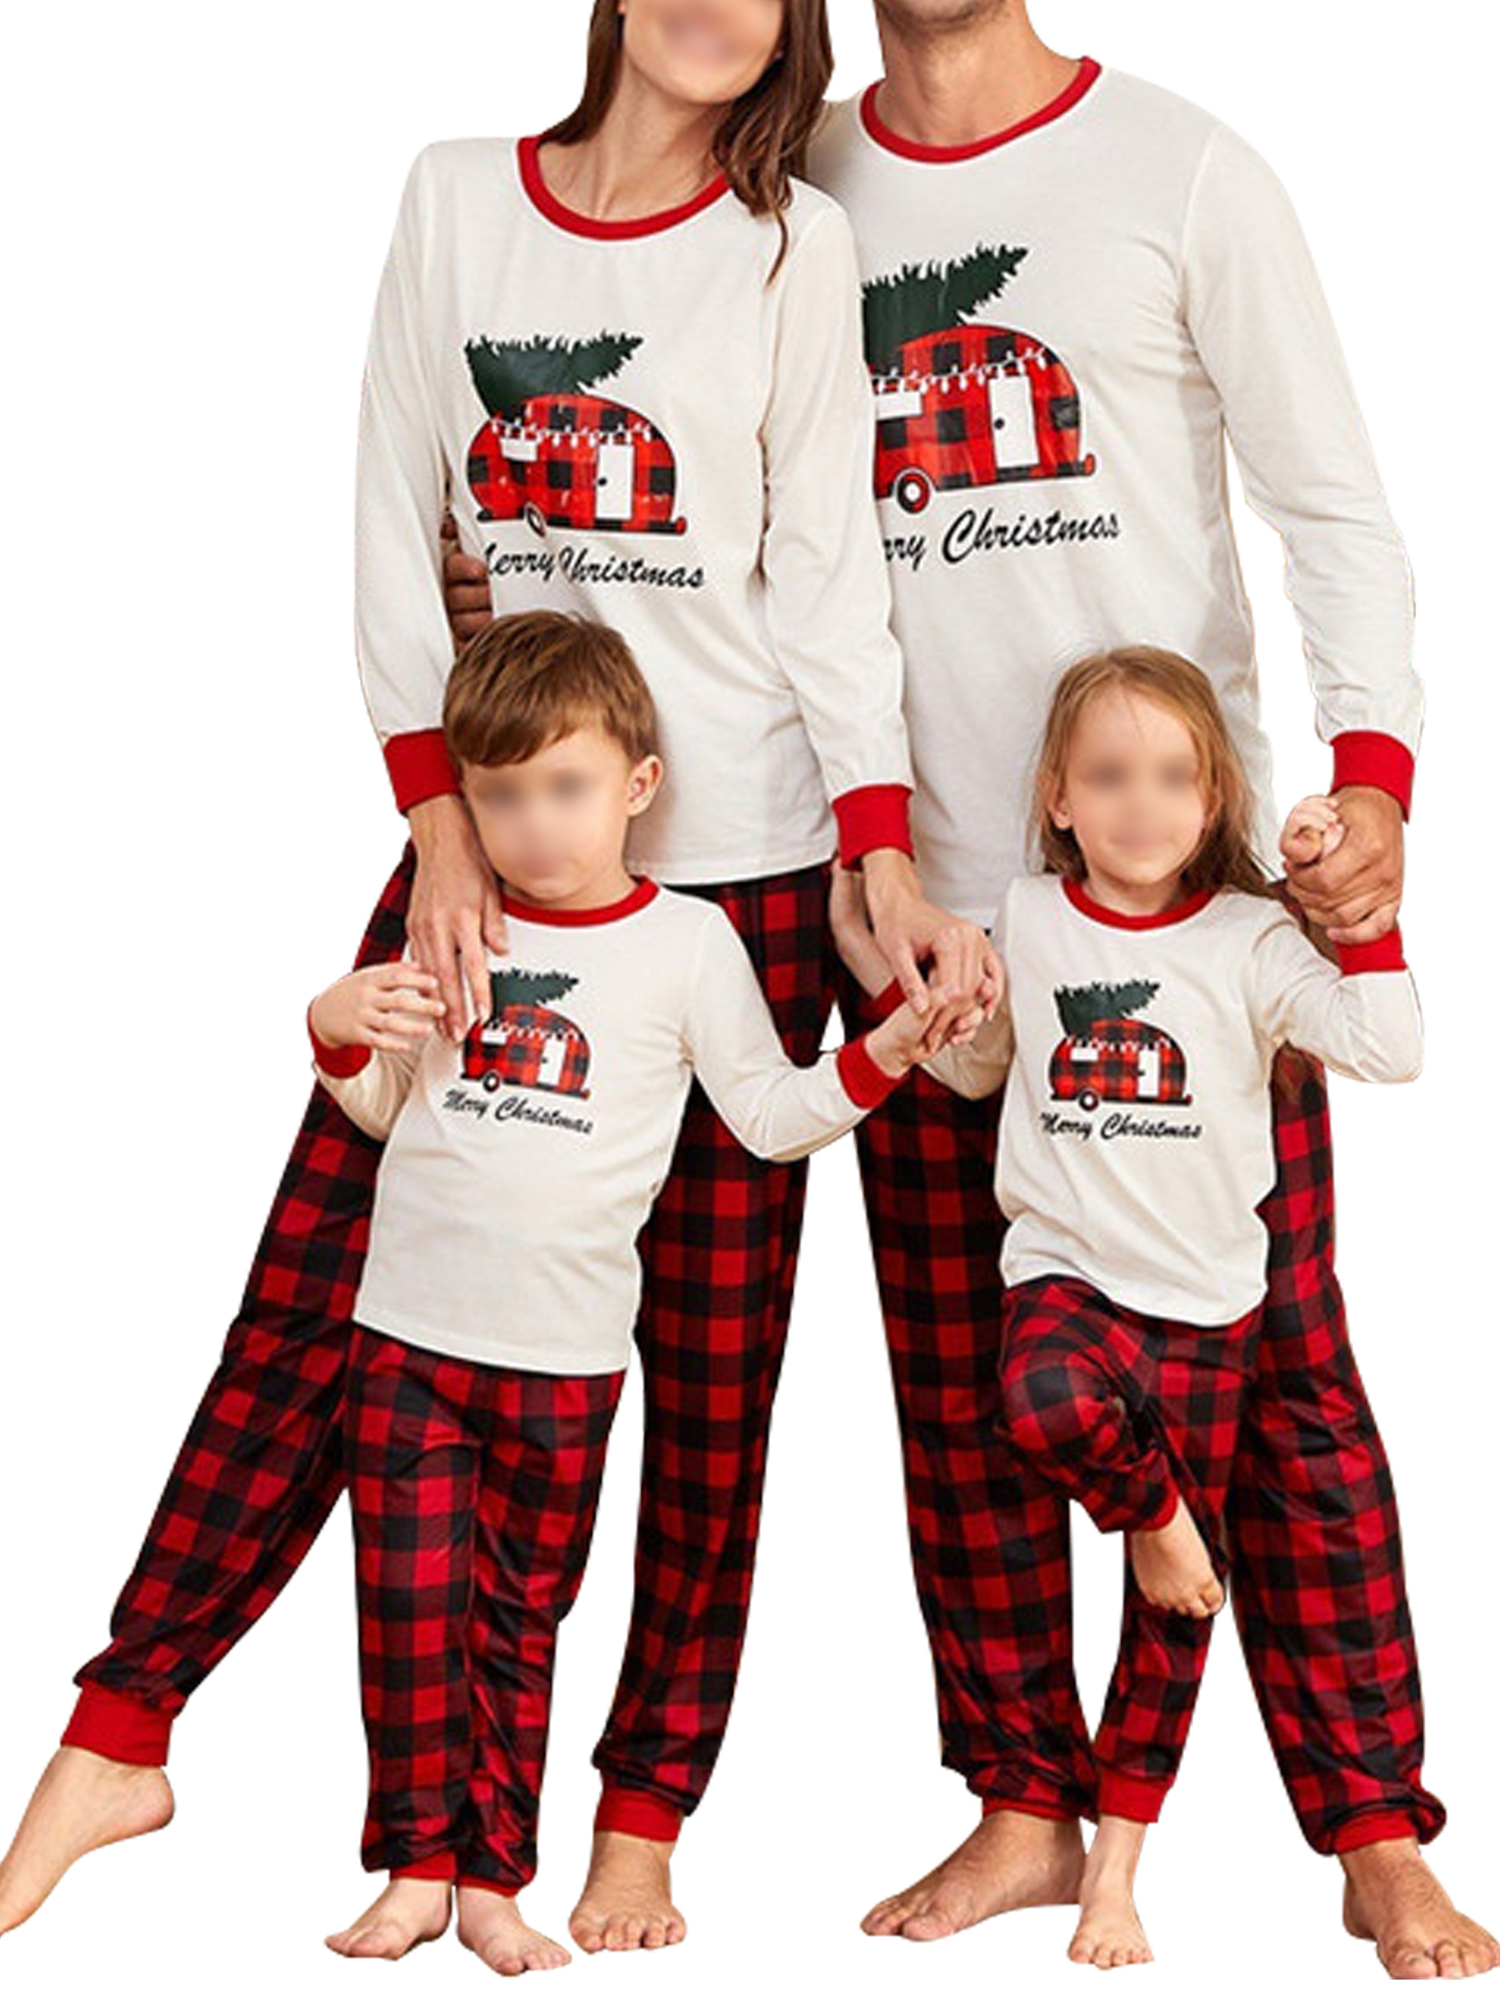 Details about  /Kids Men Women Outfit Clothes Nightwear Family Matching Pajamas Christmas  Set